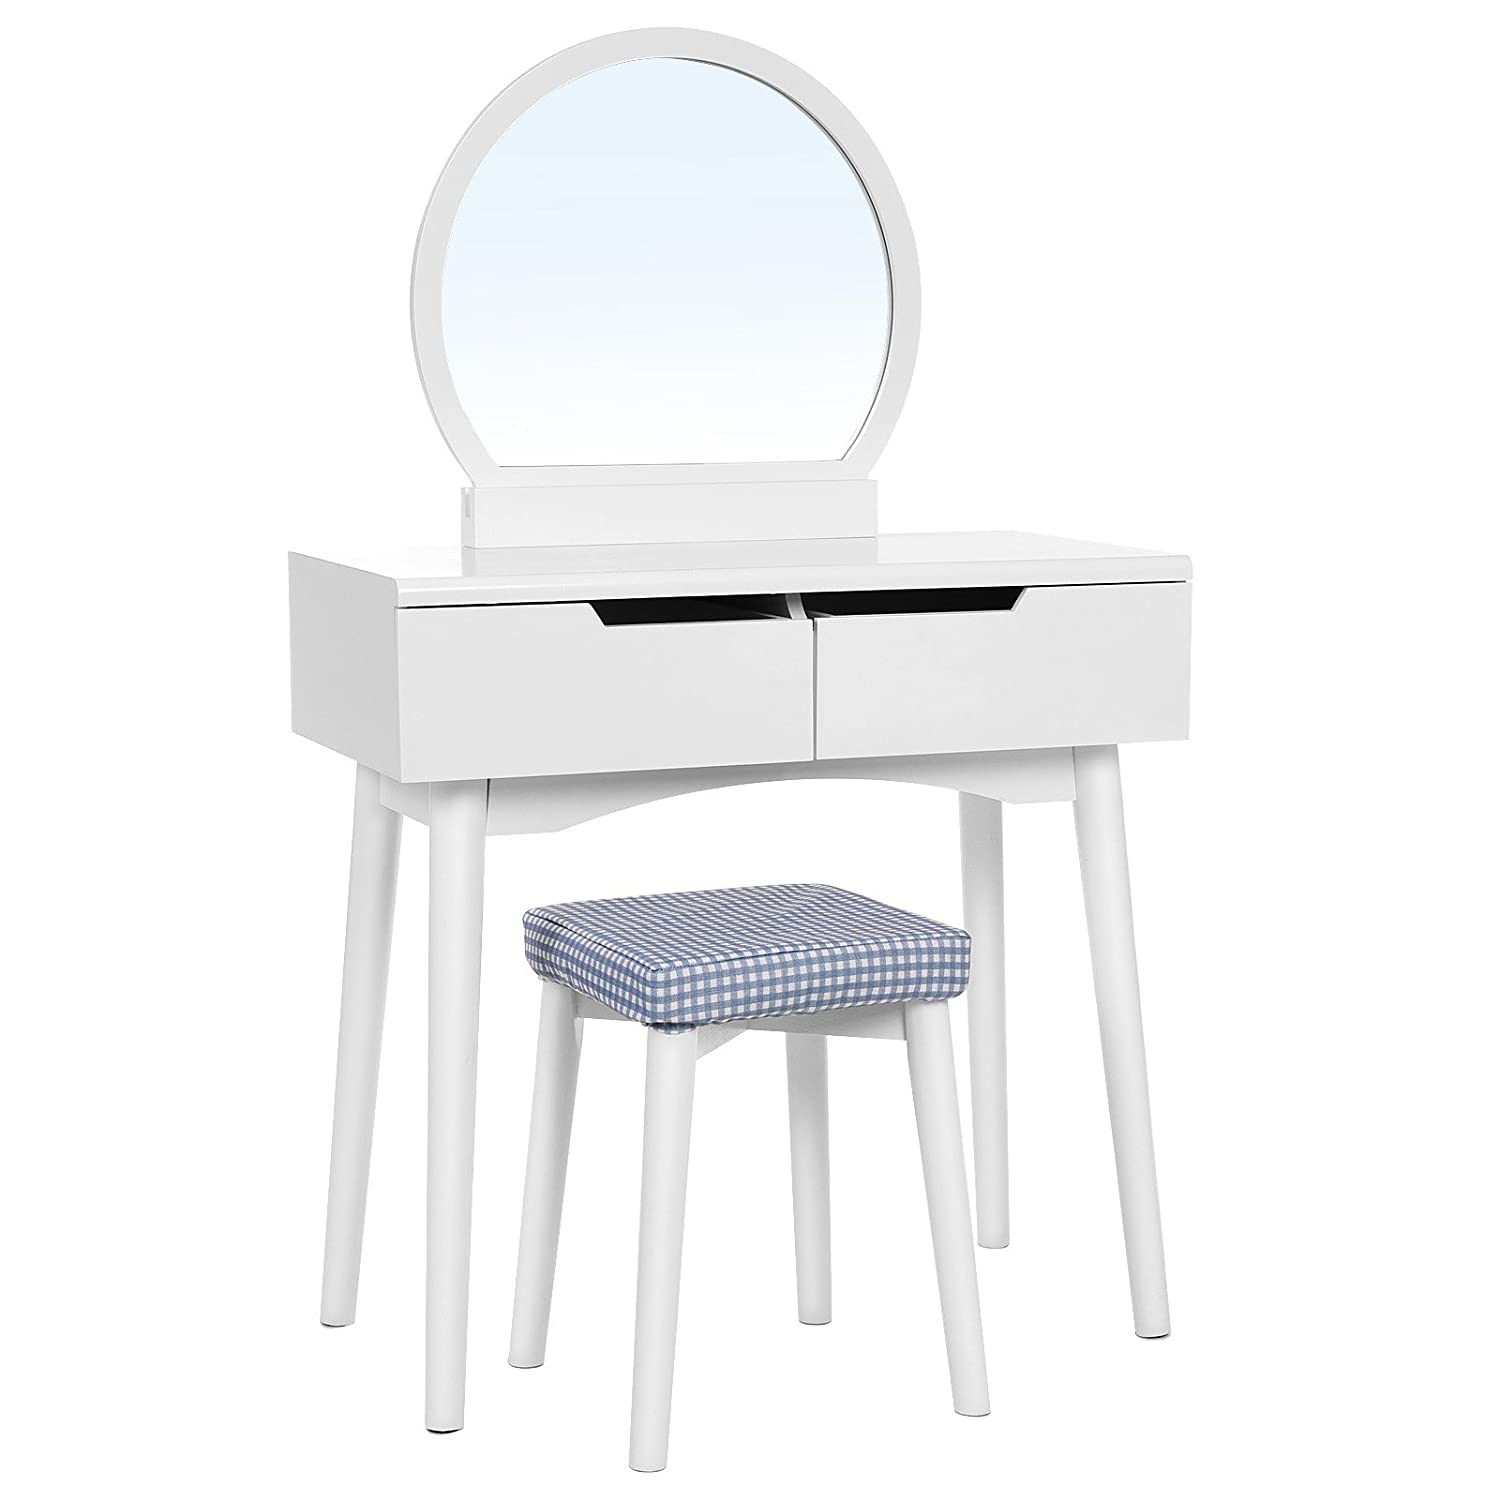 SONGMICS Vanity Table Set with Round Mirror 2 Large Sliding Drawers Makeup Dressing Table with Cushioned Stool White URDT11W